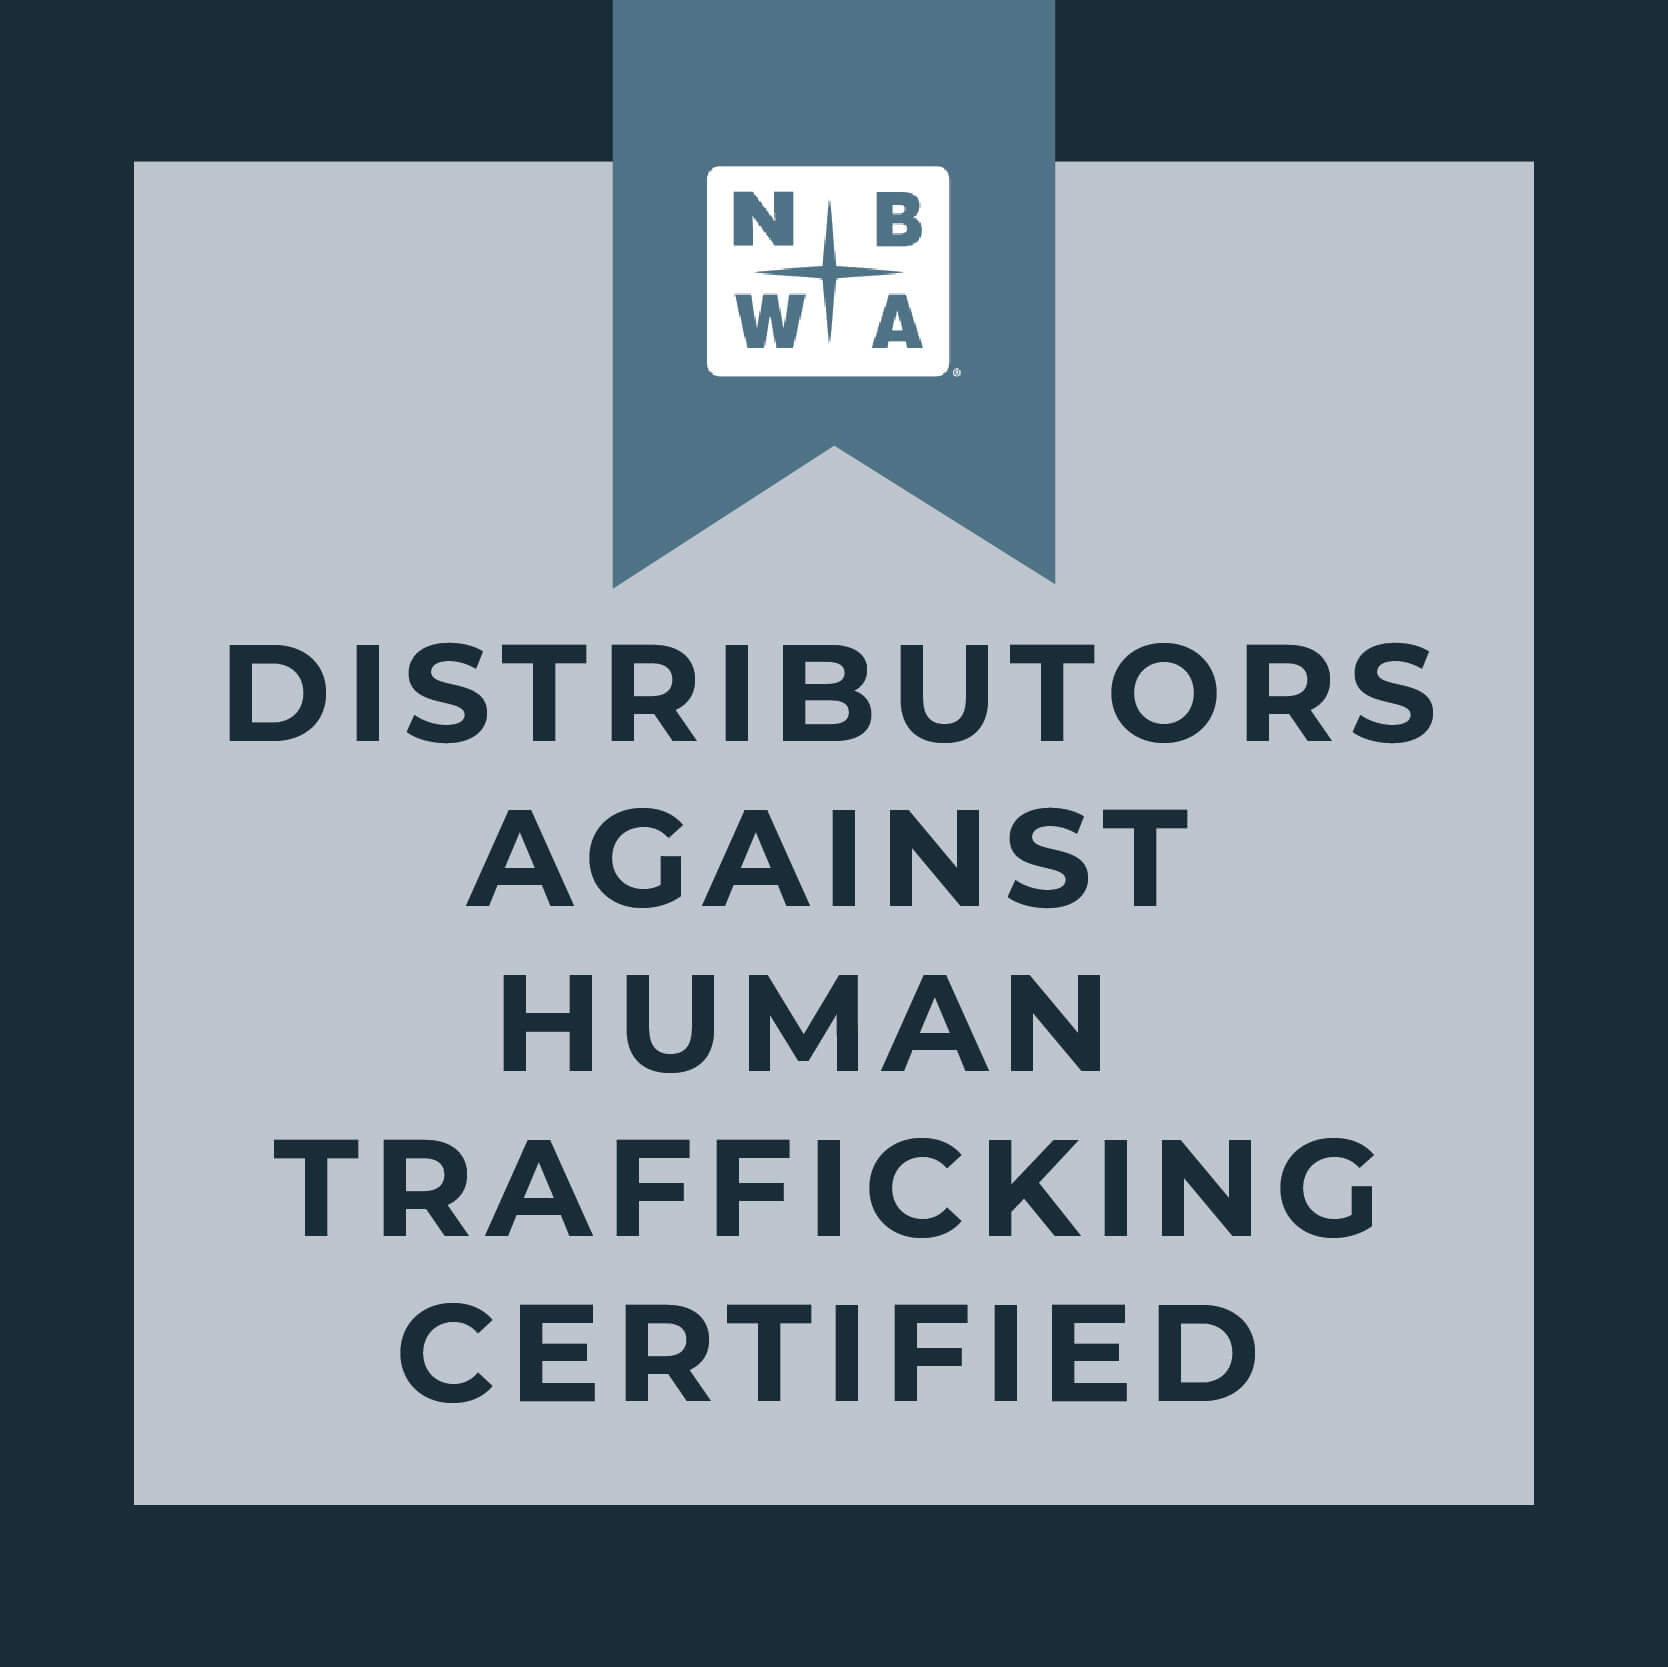 Distributors Against Human Trafficking Certificate Badge